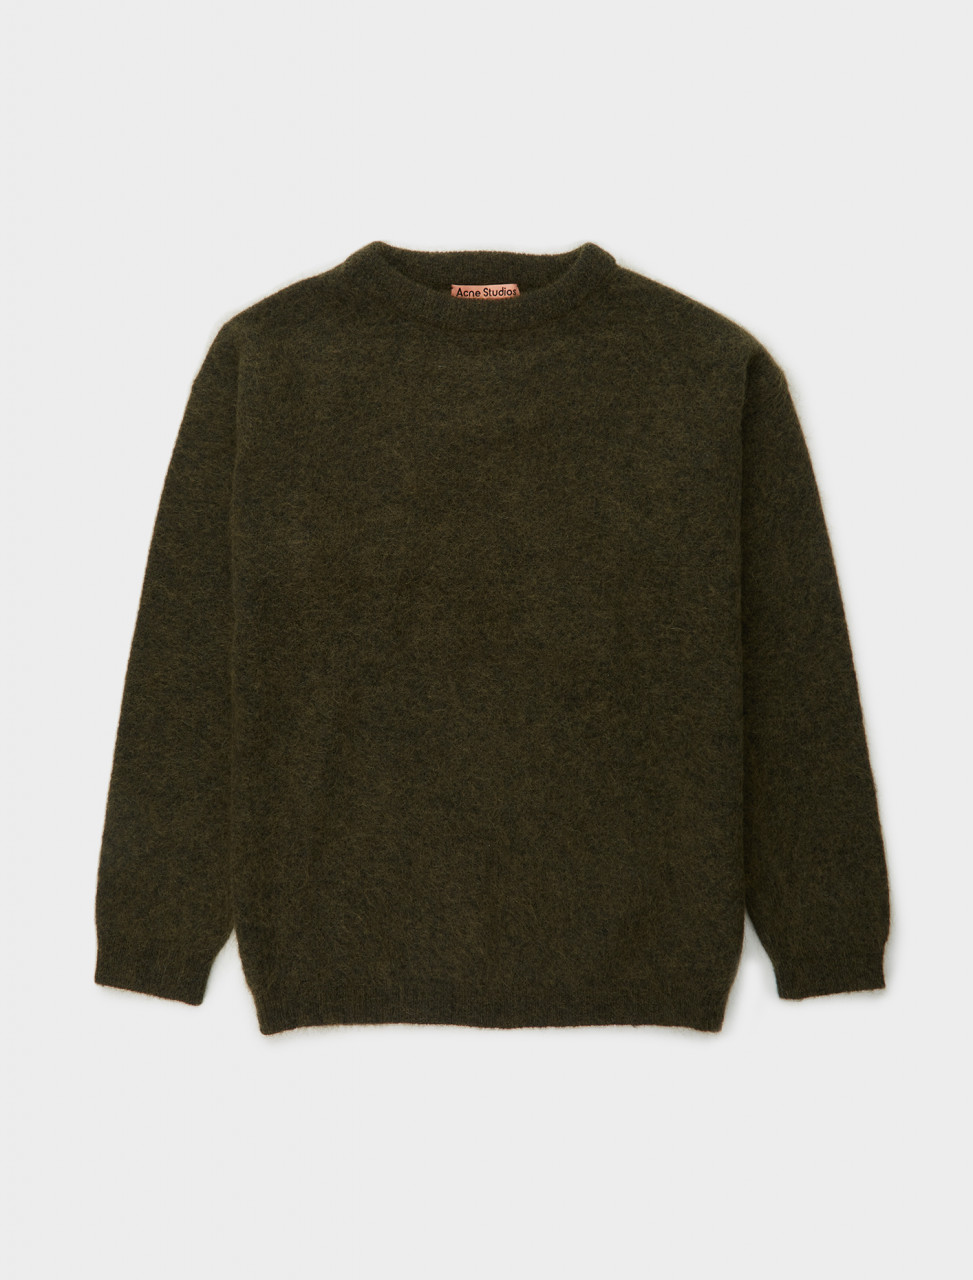 110-A60195-AB7 ACNE STUDIOS CREWNECK SWEATER IN OLIVE GREEN